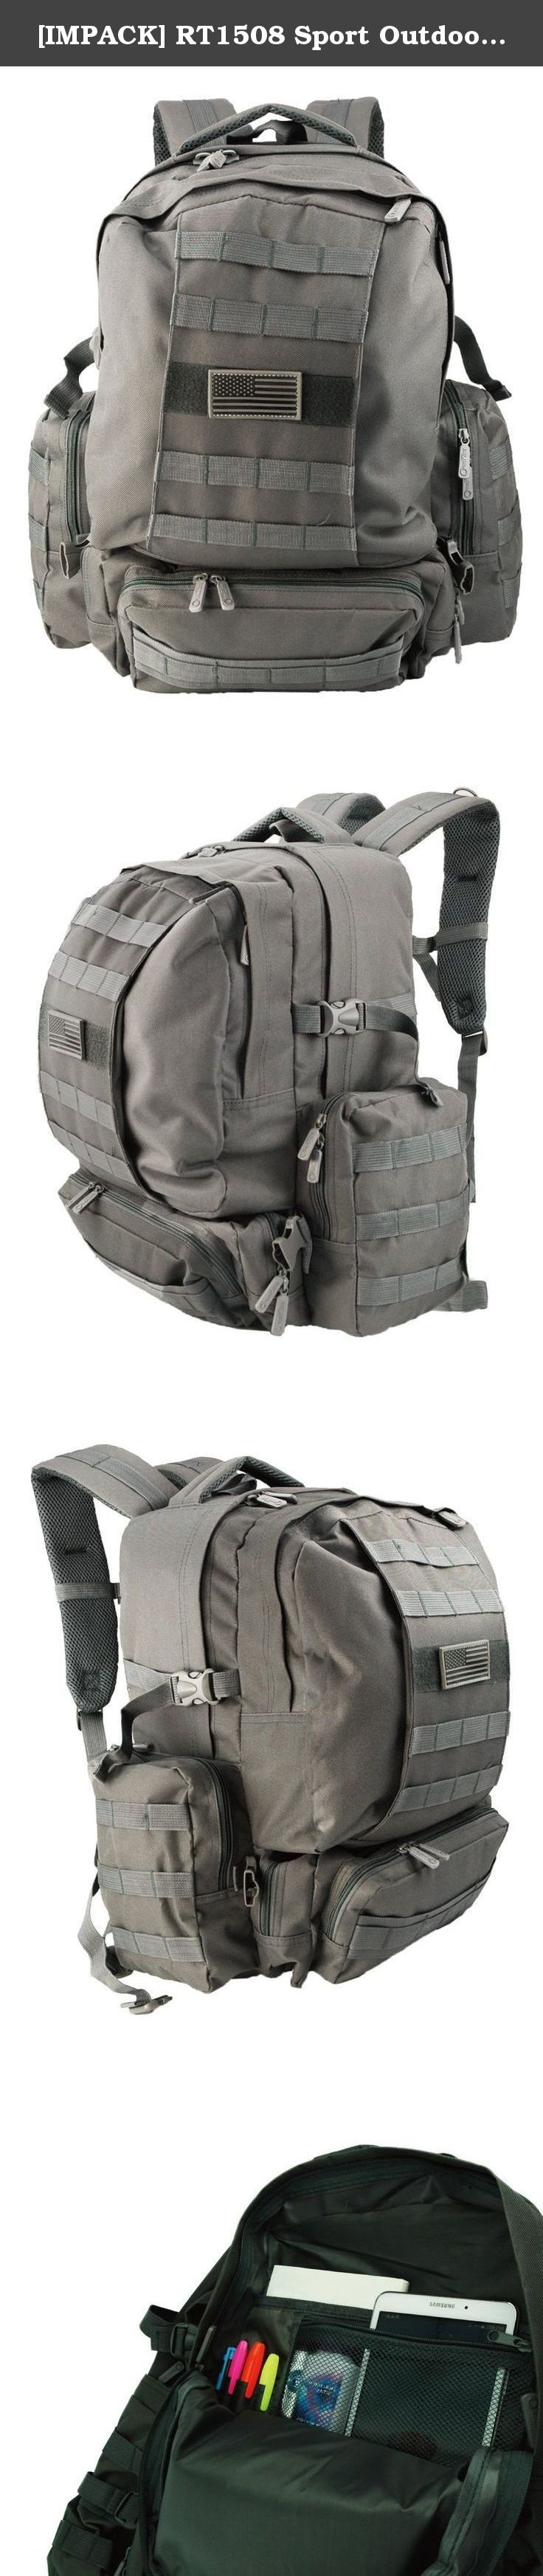 [IMPACK] RT1508 Sport Outdoor Military Tactical Molle Backpack Camping Hiking Trekking Backpack (DCG WITH 1 FREE PATCH). 12.5 x 7 x 19.5 inches.